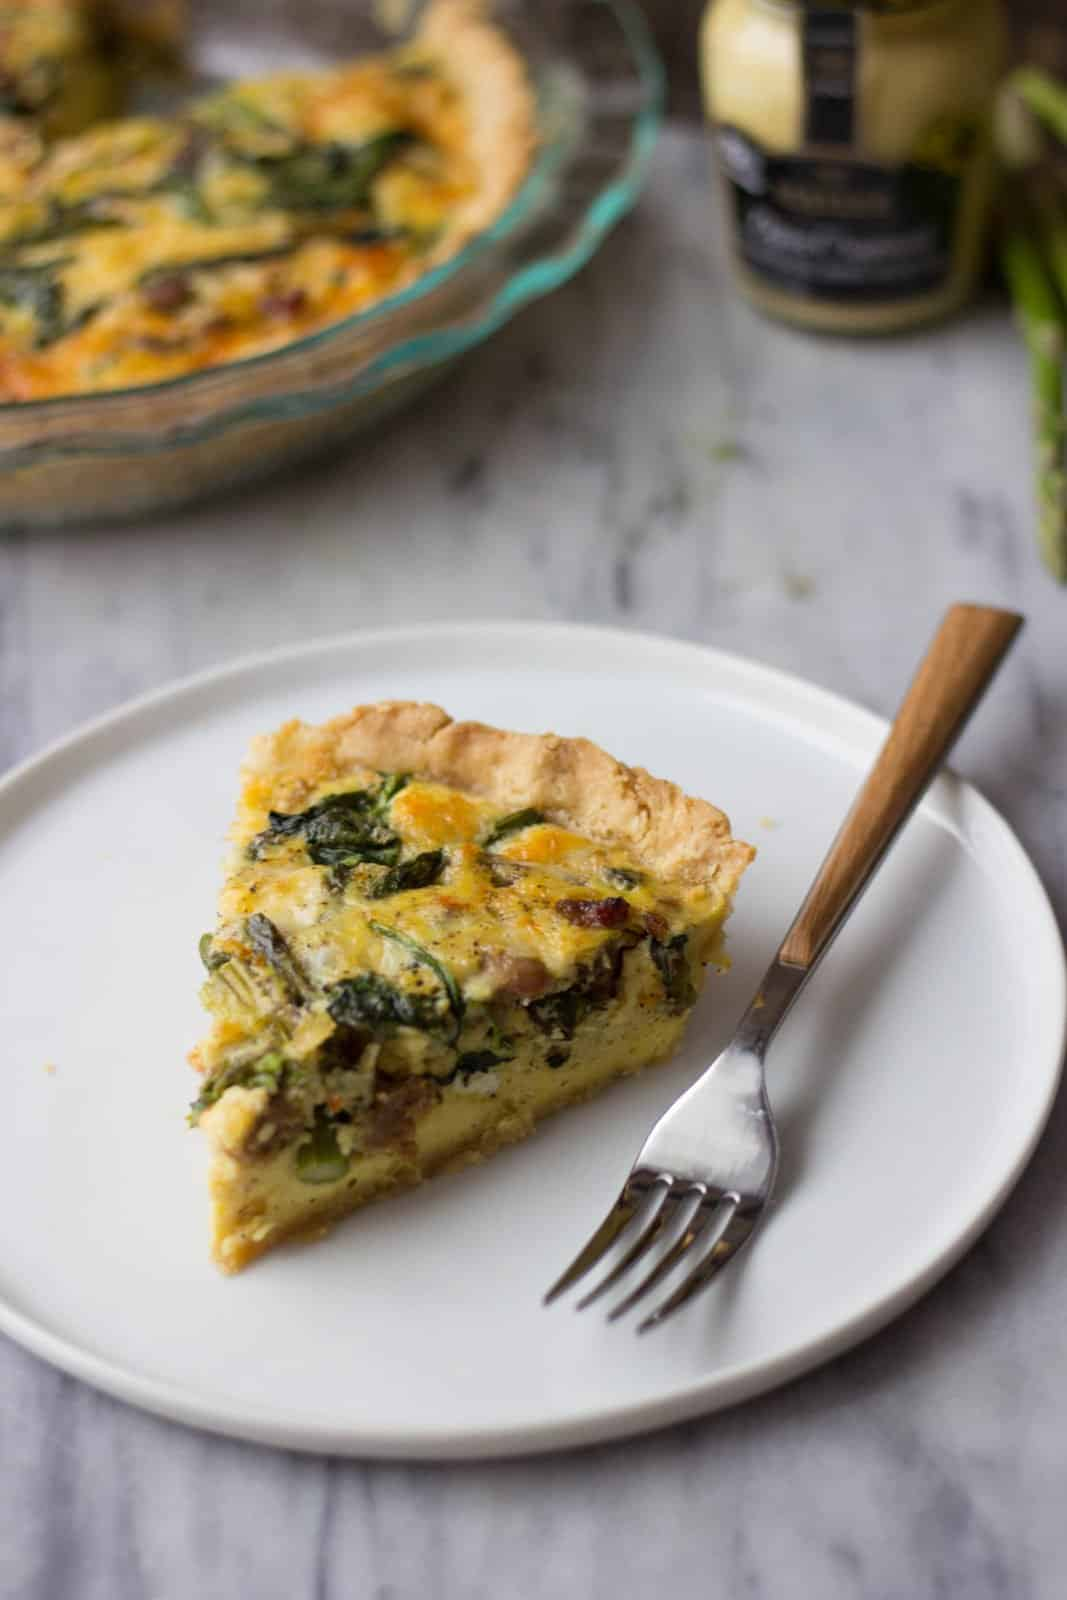 Asparagus & Sausage Quiche with leafy greens cooked into it.